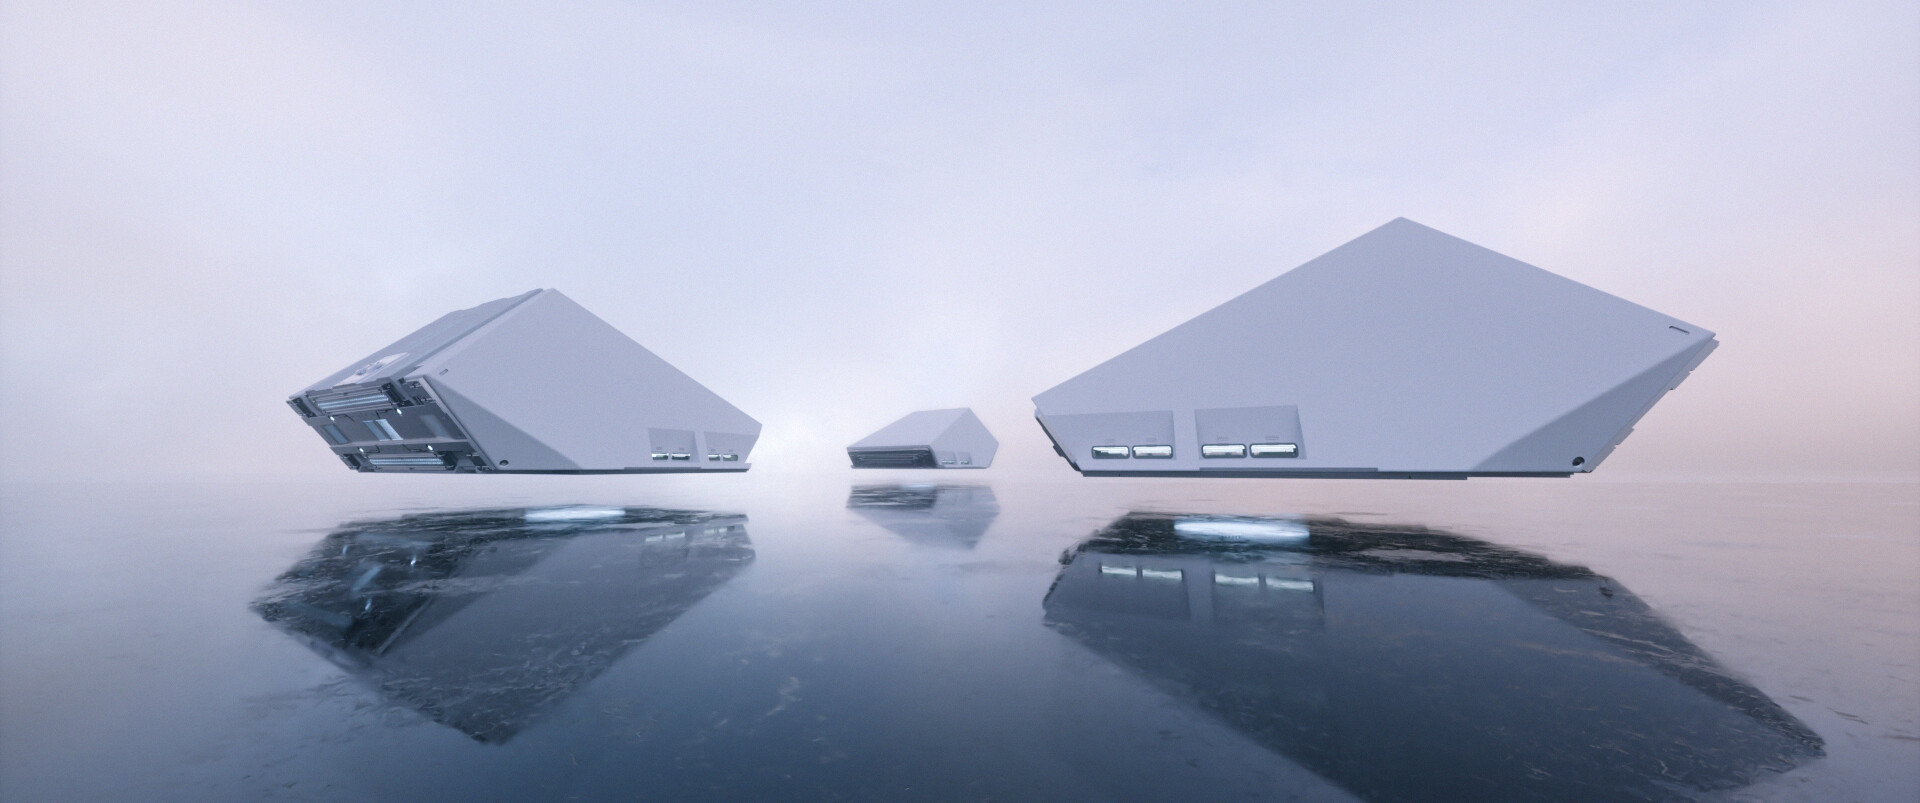 Mark chang 0 0003 floating building v2